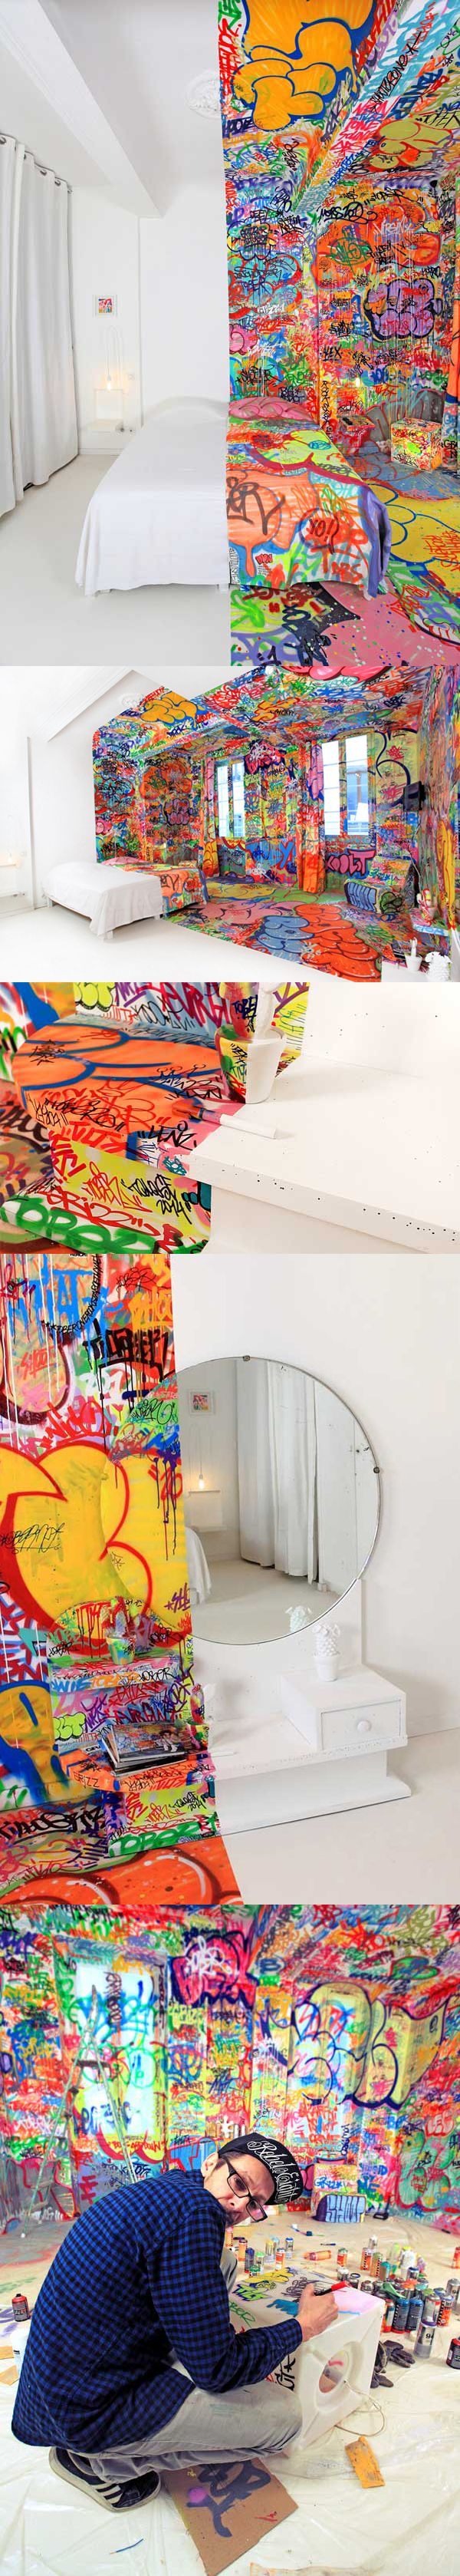 best 25 graffiti room ideas on pinterest graffiti bedroom tilt panic room